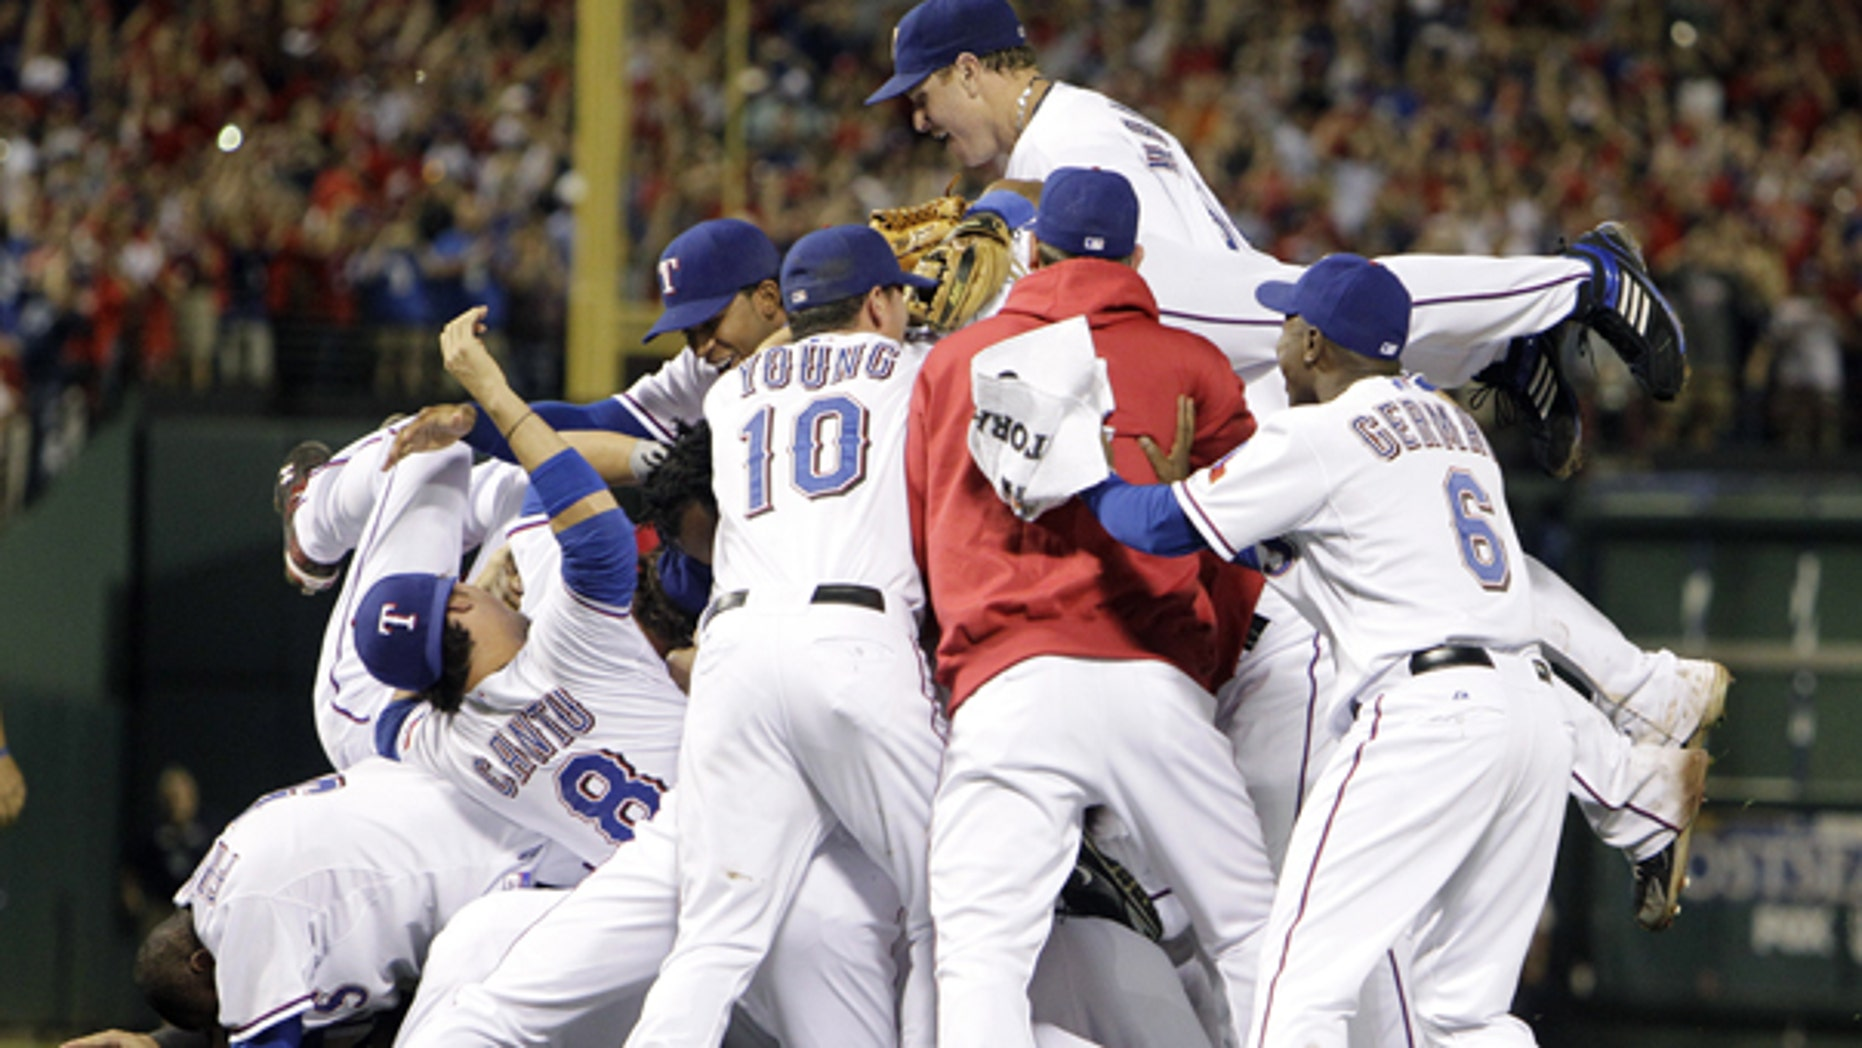 Oct. 22: Texas Rangers players celebrate after a 6-1 over the New York Yankees win in the deciding Game 6 of baseball's American League Championship Series in Arlington, Texas.